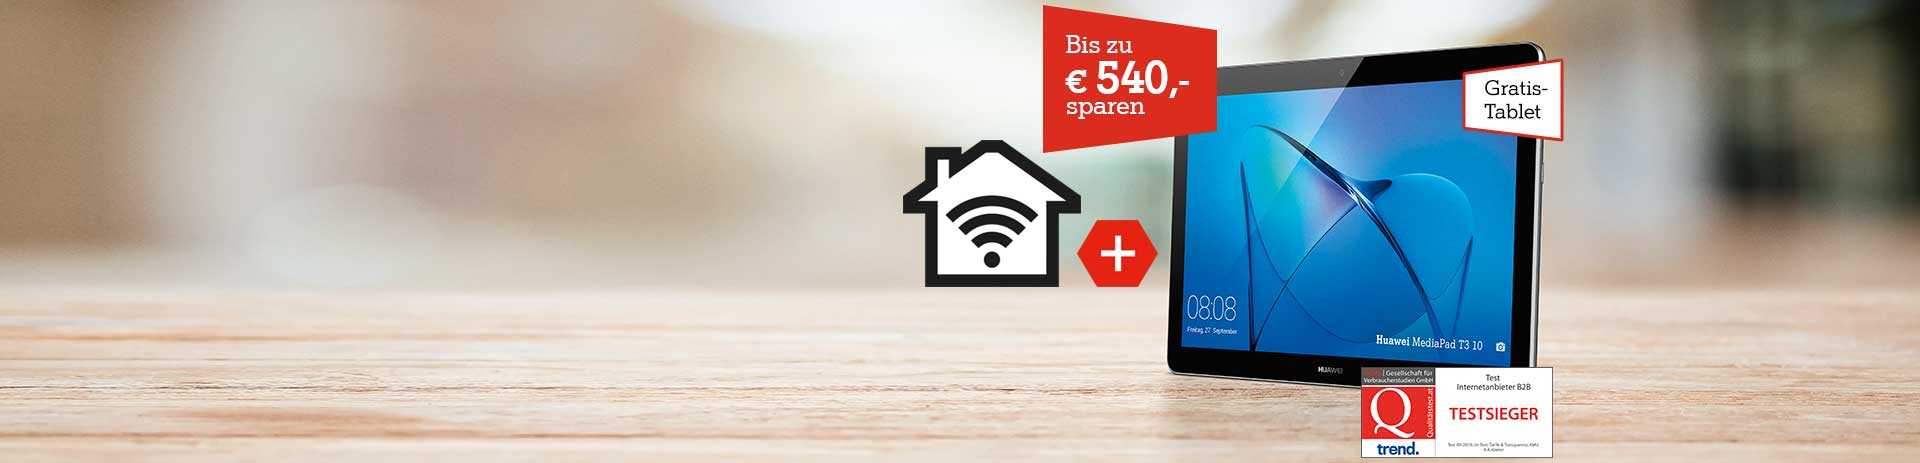 A1 Business Internet mit Gratis Tablet